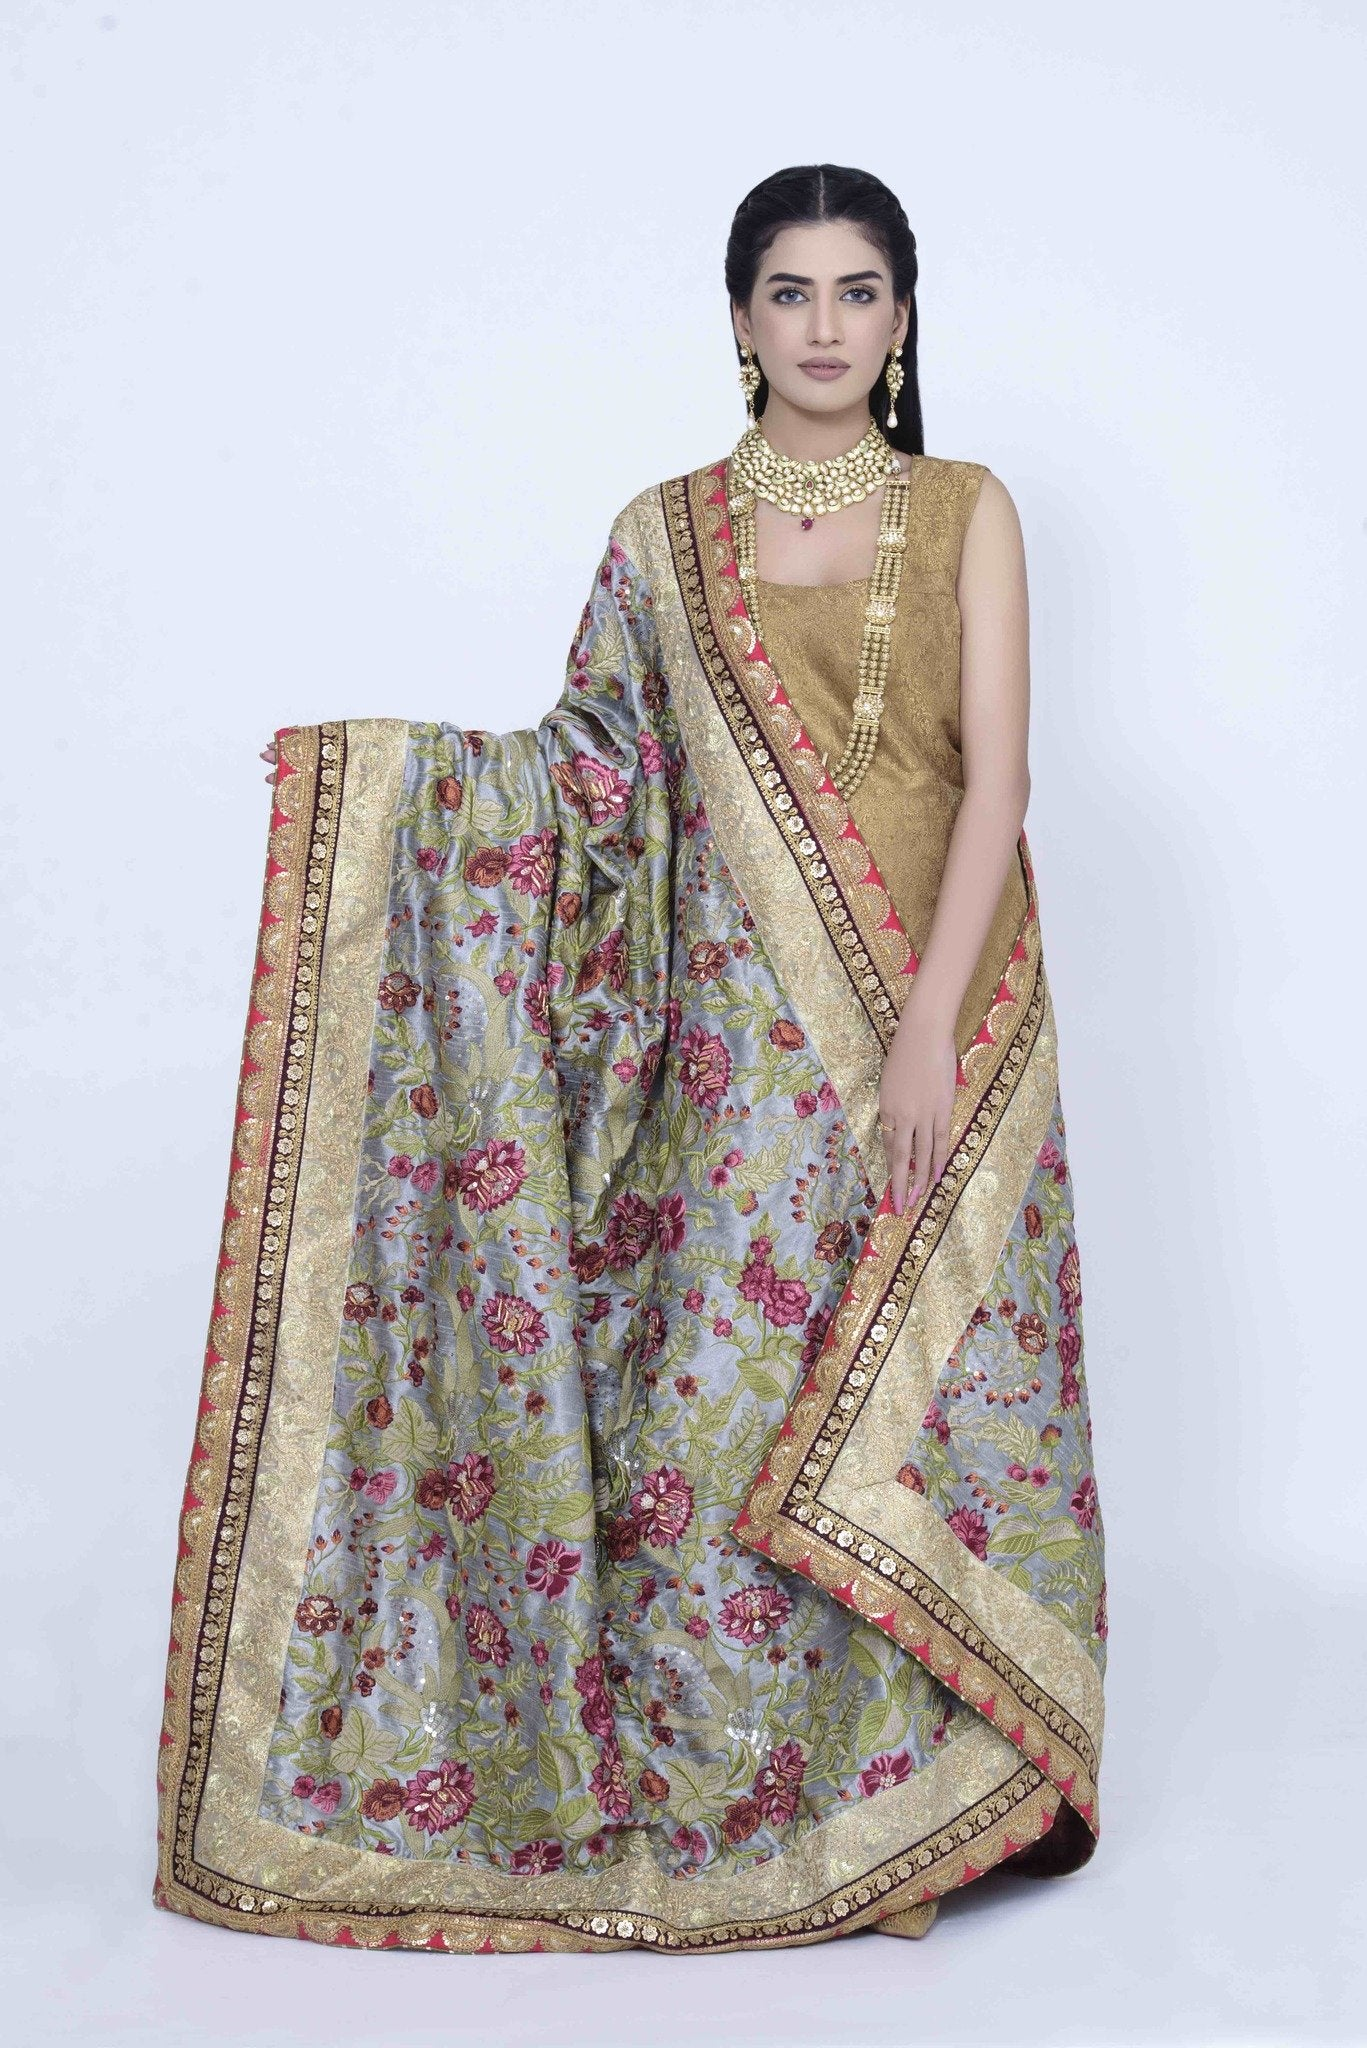 Gray Raw Silk Shawl with Floral Embroidary & Handwork